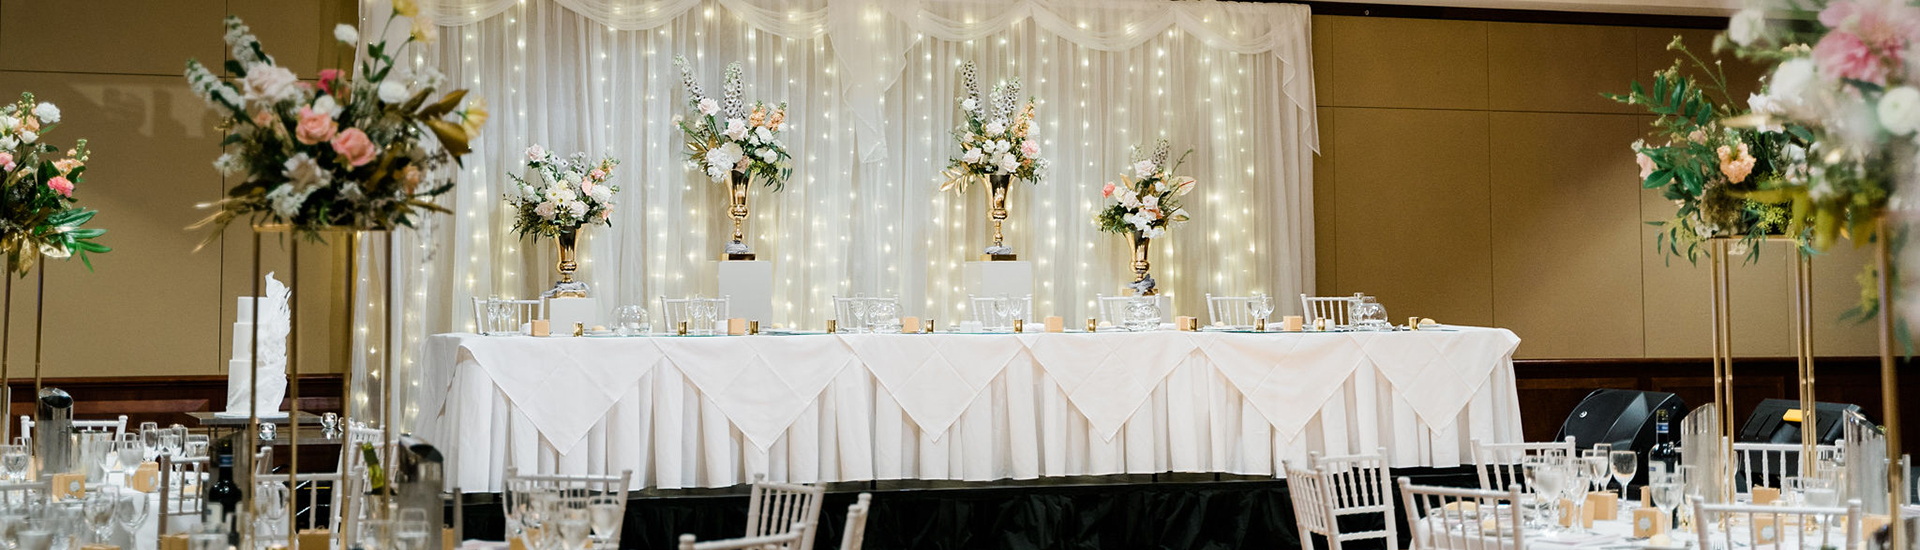 Samantha-&-Jordan-royal-on-the-park-hotel-wedding-reception-gold-stand-fresh-flower-floral-centrepiece-bridal-table-fairylight-backdrop-white-pedestal-plinth-gold-urn-banner